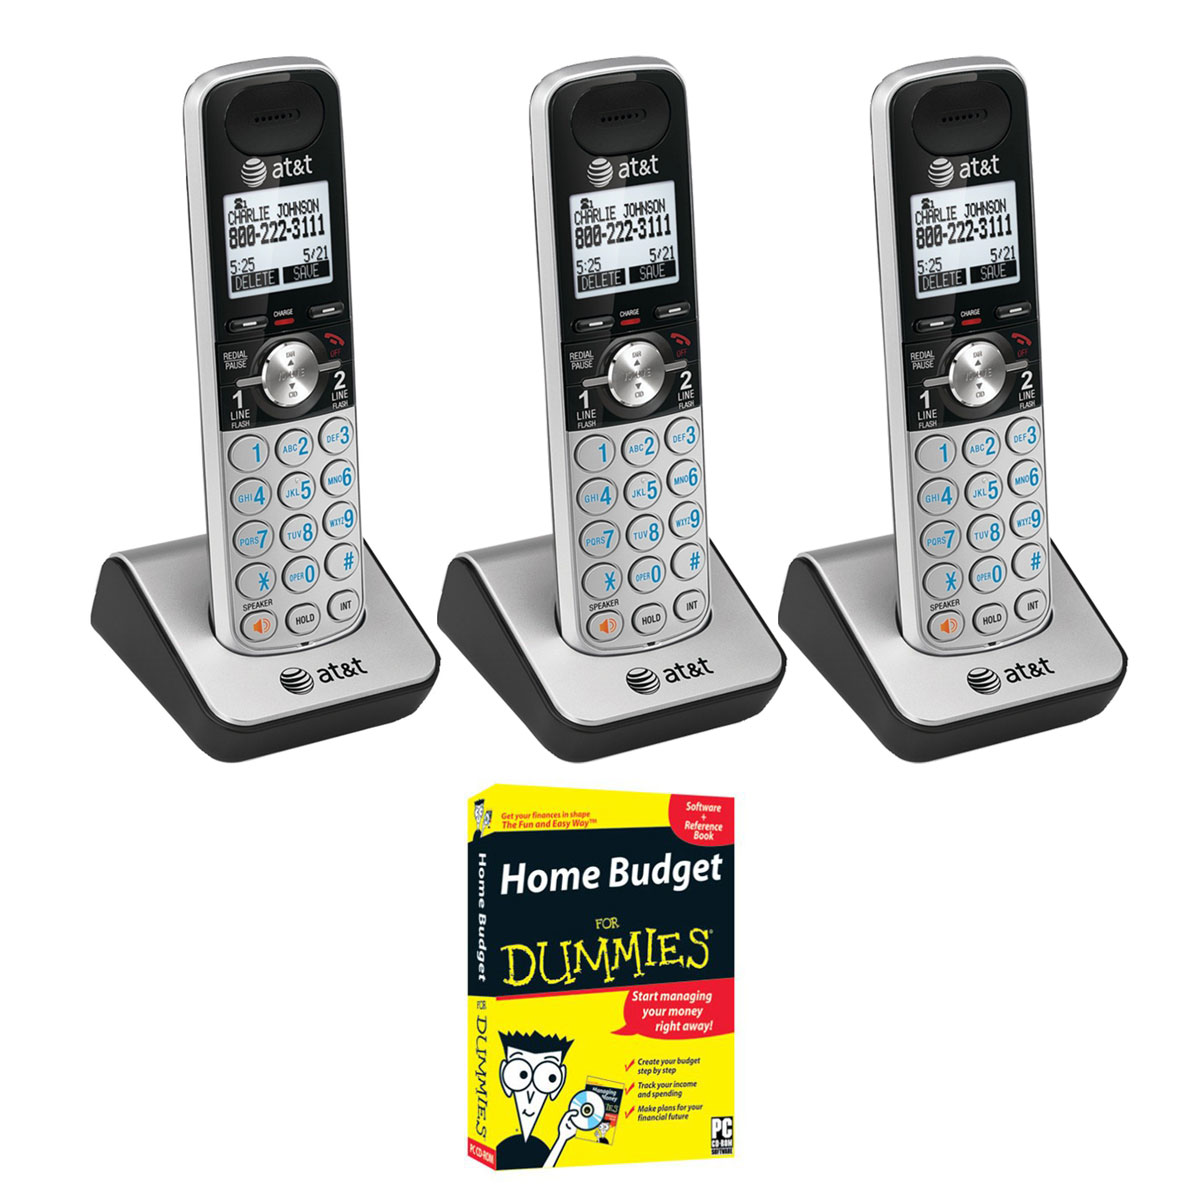 AT&T TL88002 Dect 6.0 1-Handset 2-Line Telephone Three Pack with Home Budget for Dummies CD-Rom by